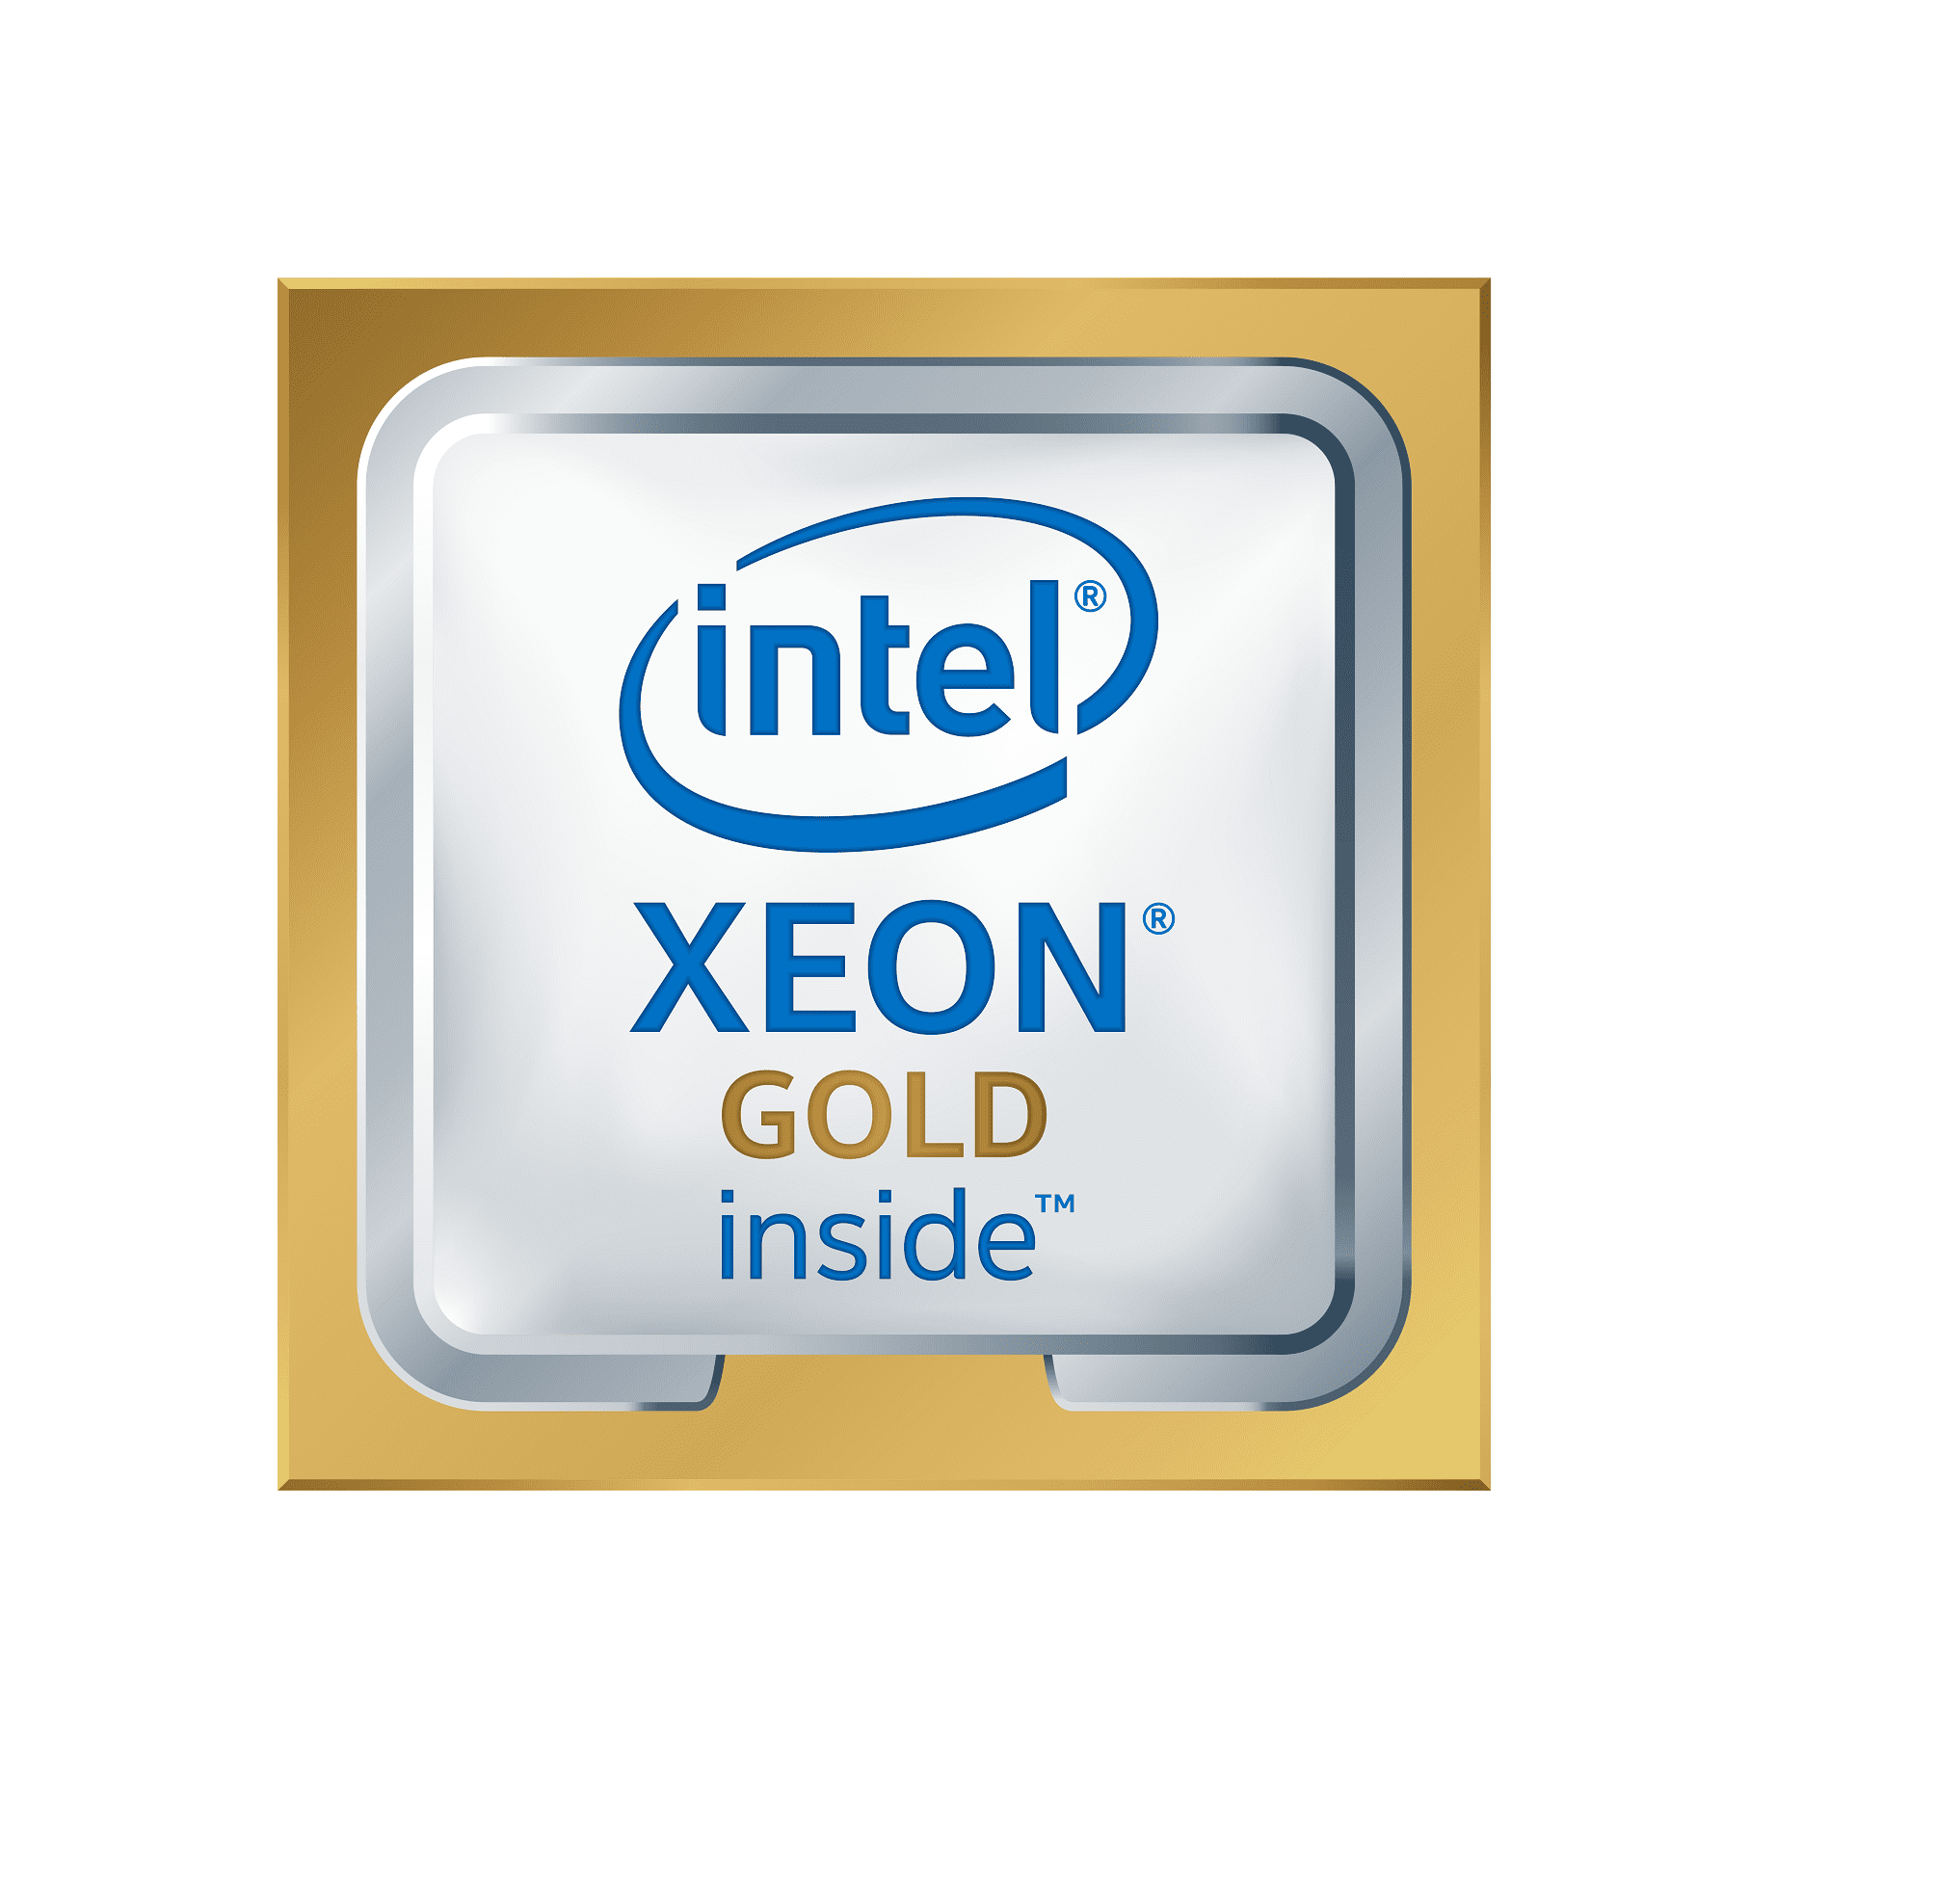 Intel Xeon Gold 6134 Processor (24.75M Cache, 3.20 GHz) FC-LGA14B by Intel